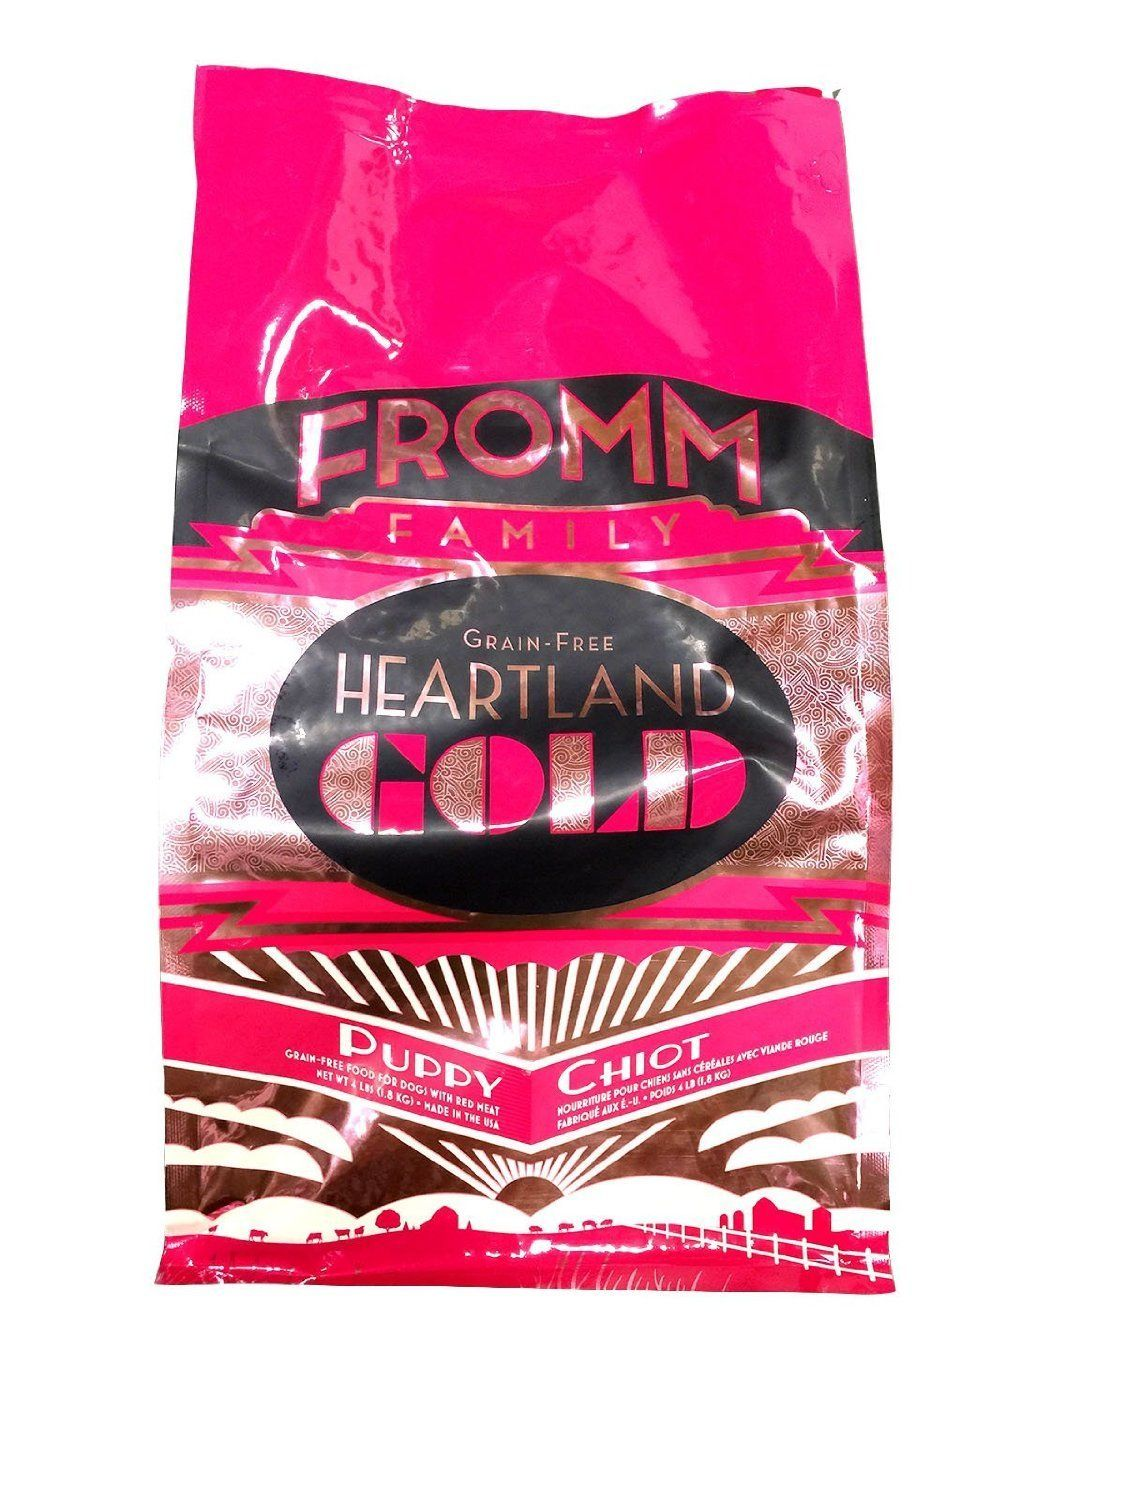 Fromm Heartland Gold Grain Free Puppy 4lb >>> Startling